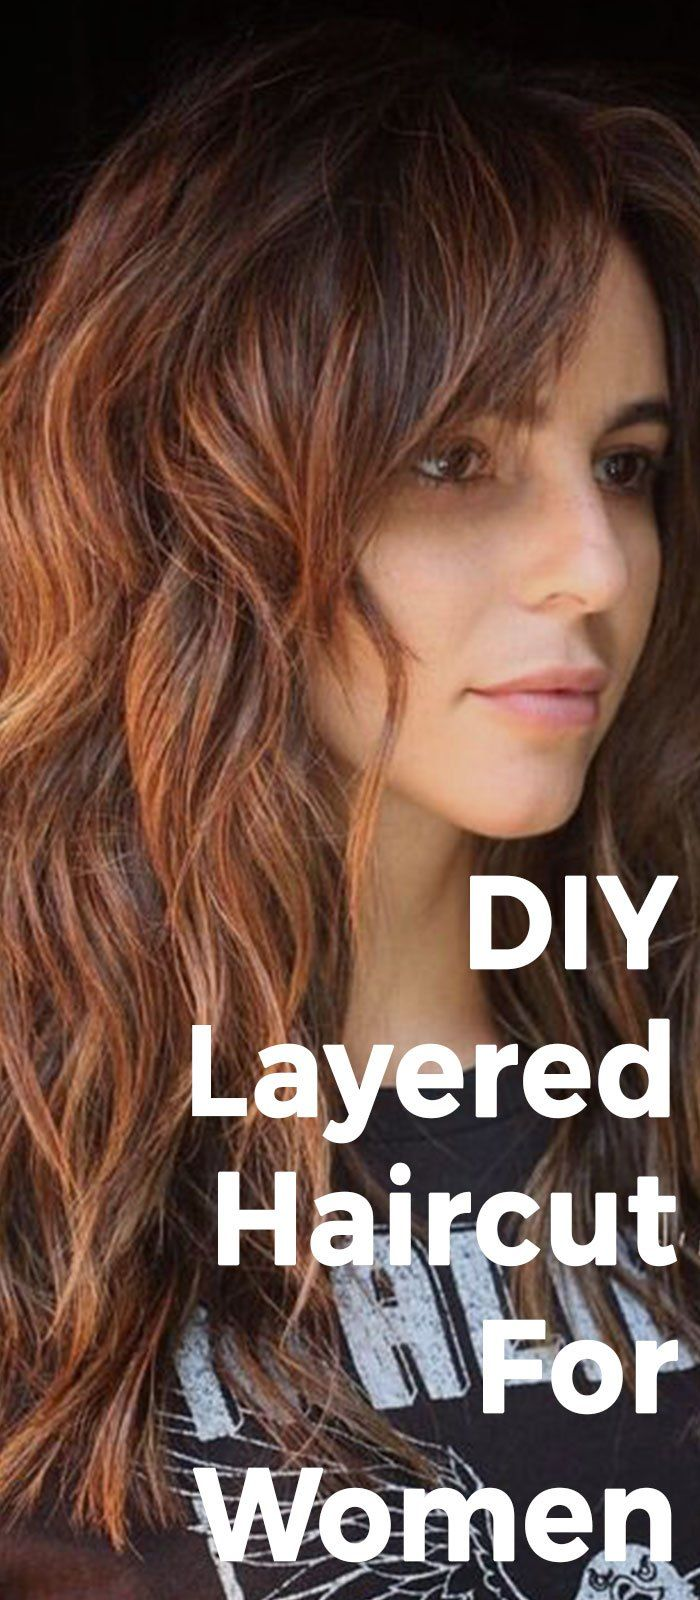 How To Get The Perfect Layered Hair According To Your Face Shape Diy Haircut Layers Layered Haircuts For Women Layered Haircuts